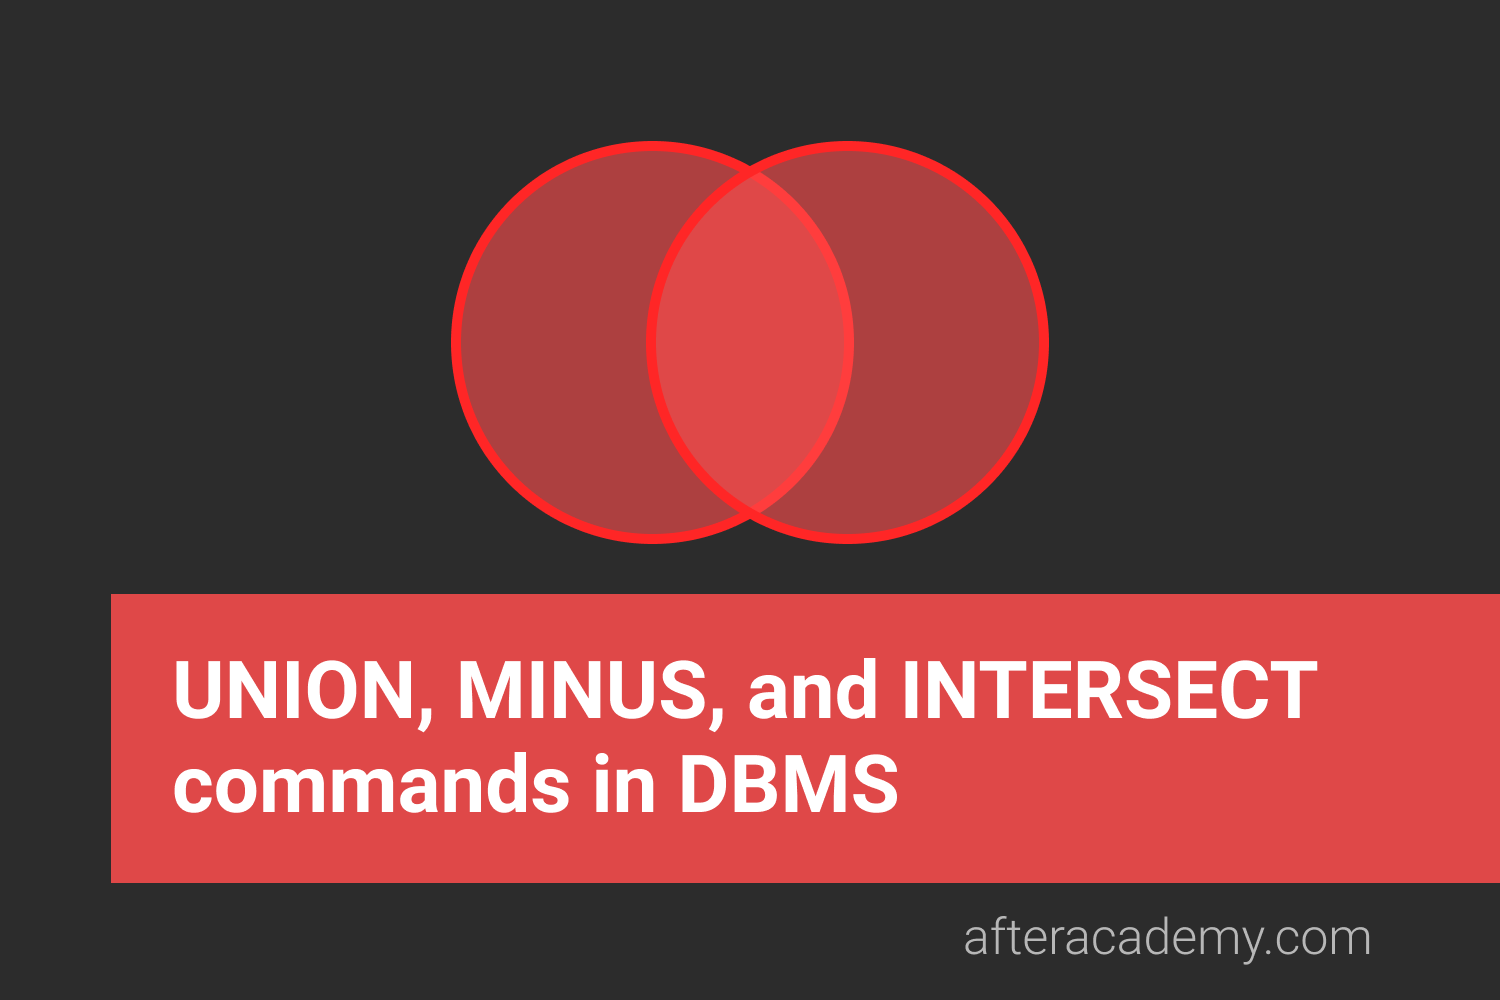 What are UNION, MINUS, and INTERSECT commands in DBMS?